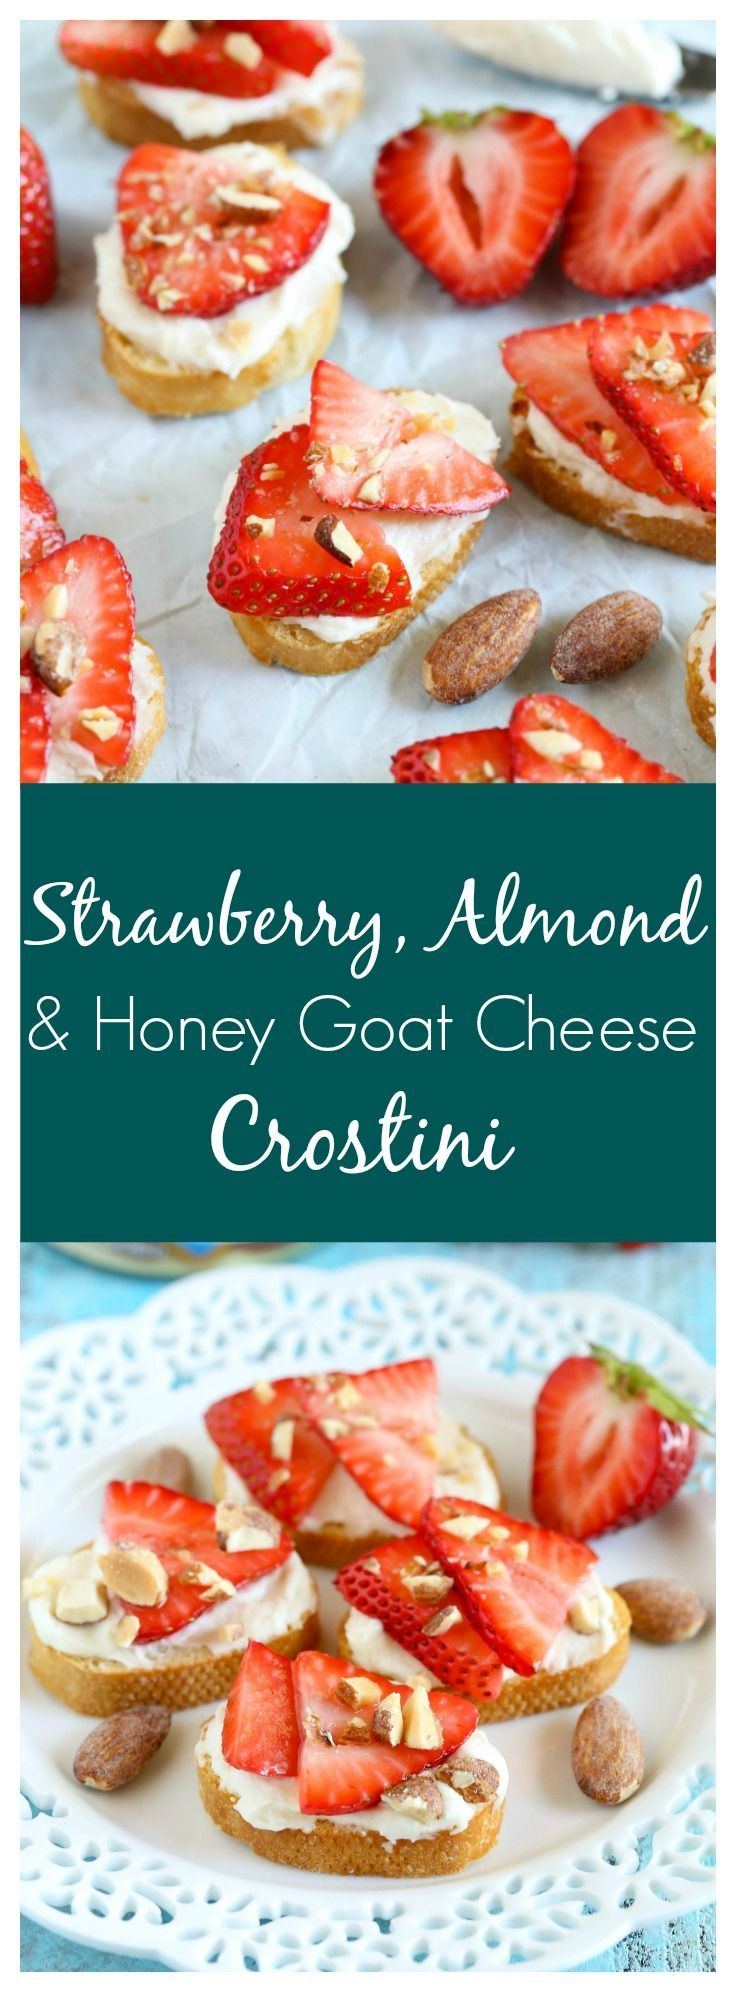 These Strawberry, Almond, and Honey Goat Cheese Crostini are so easy to make and perfect for summer! [ad]